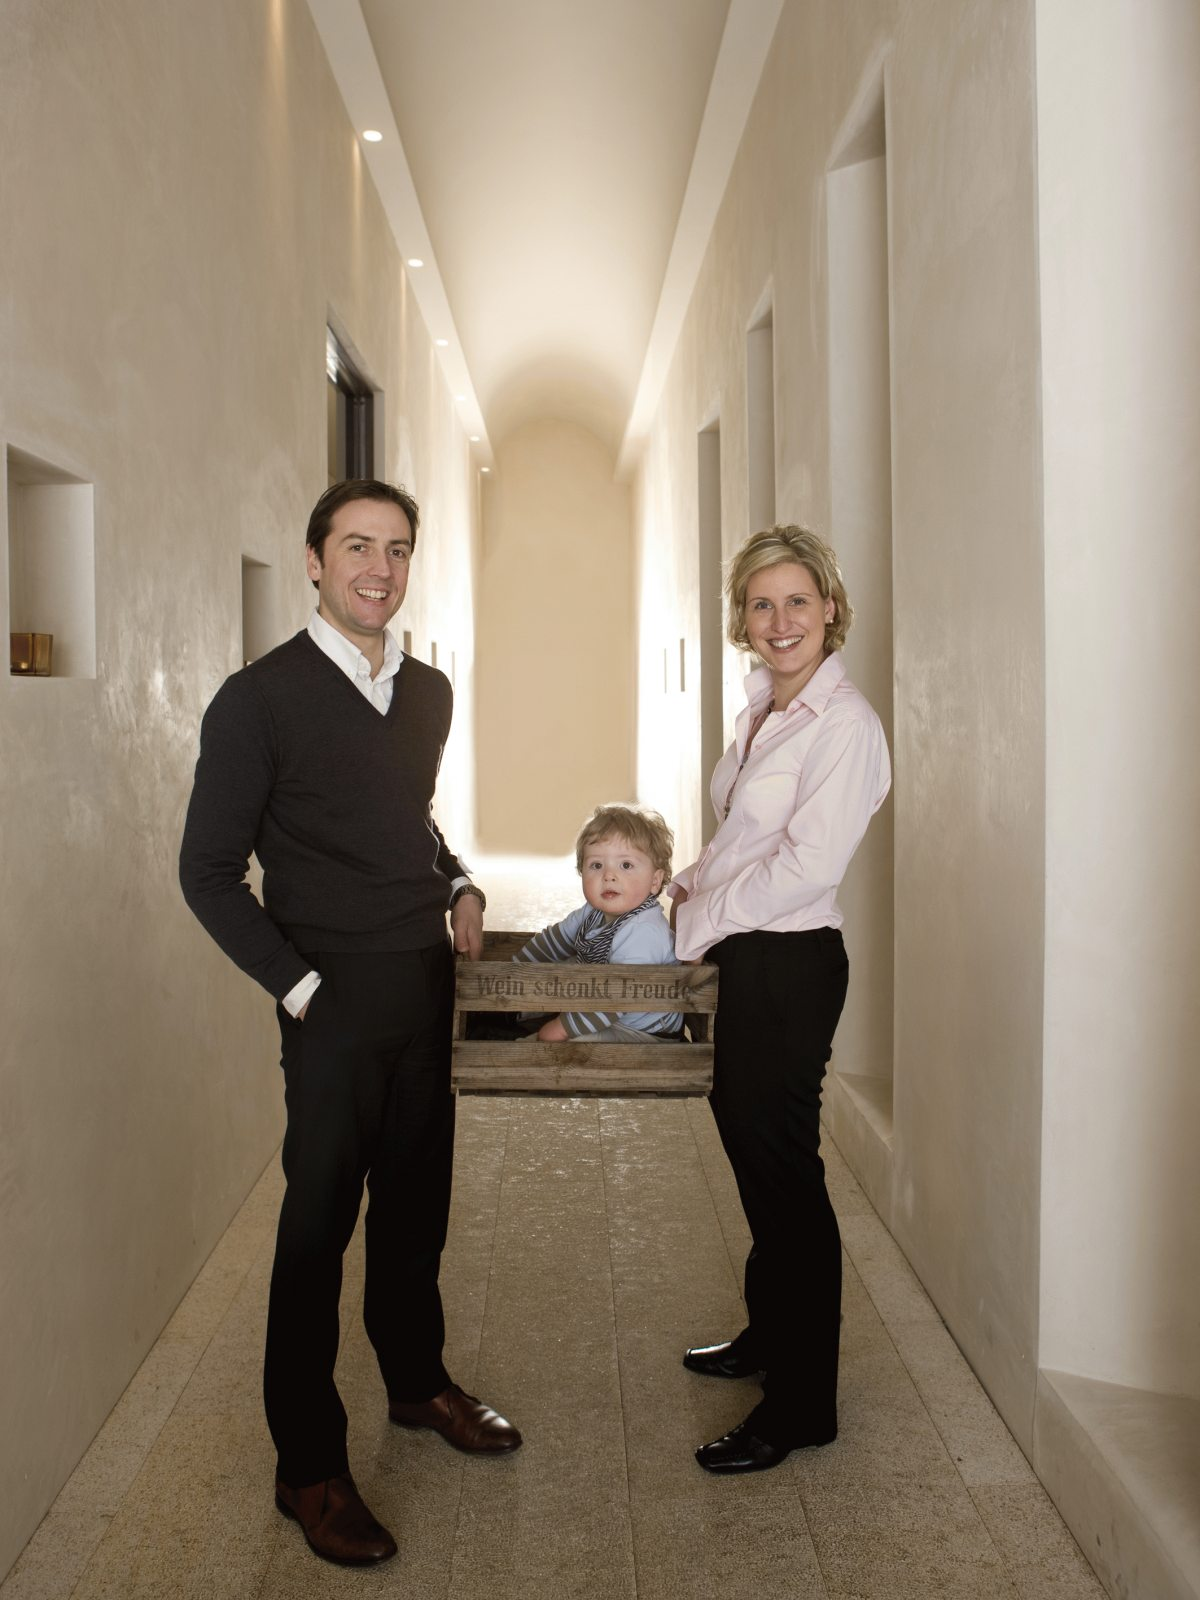 Die Winzerfamilie H.O. Spanier, Louis und Carolin Spanier-Gillot